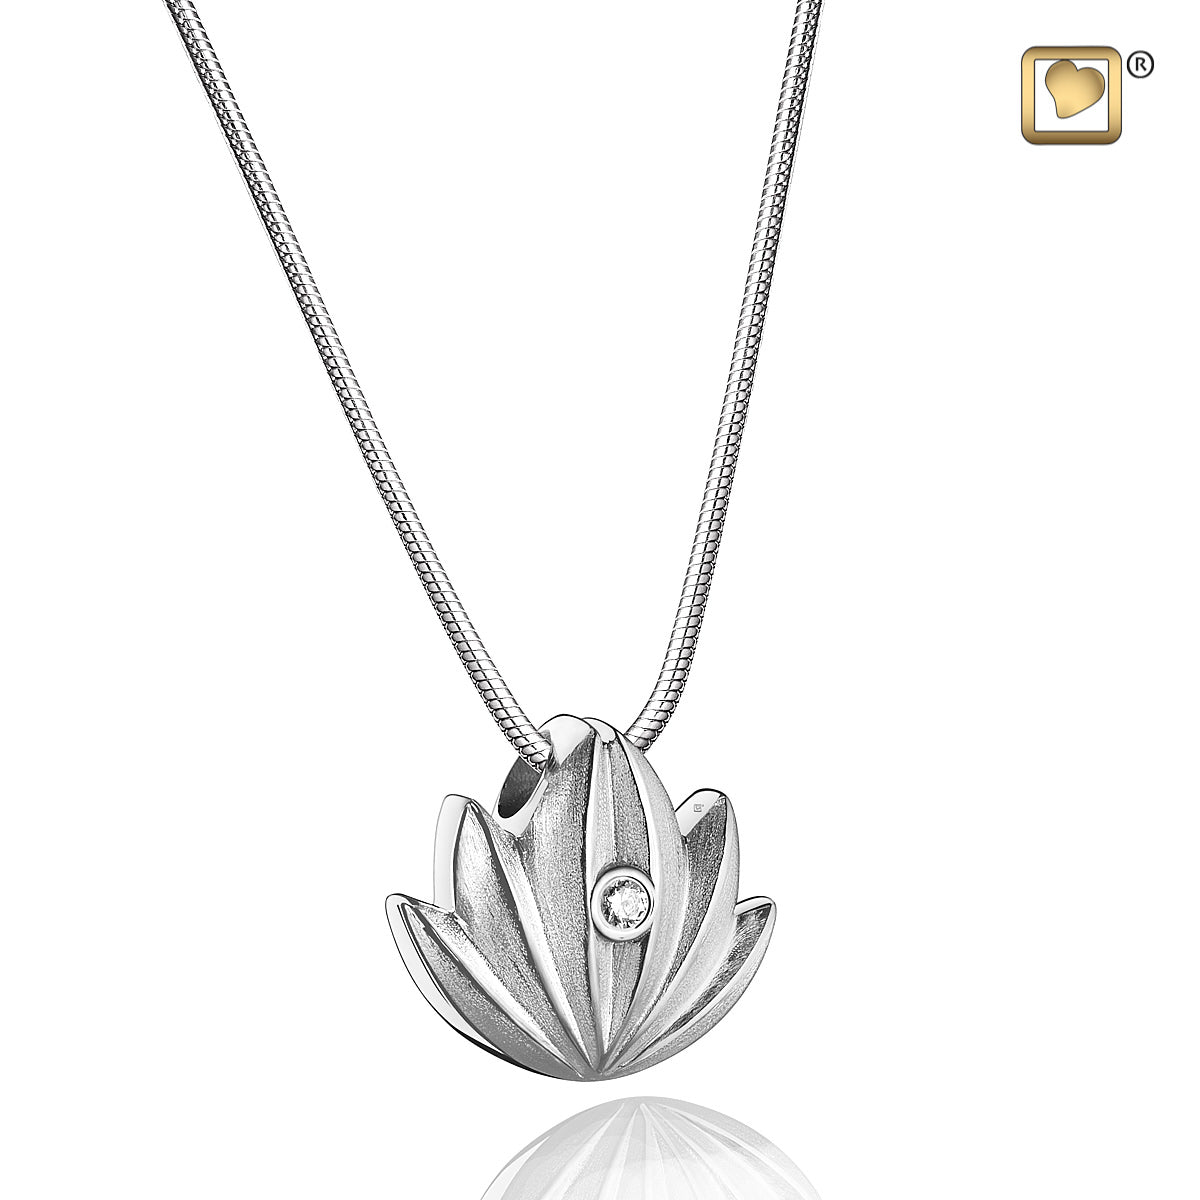 Cremation jewelry - lotus pendant by Geturns